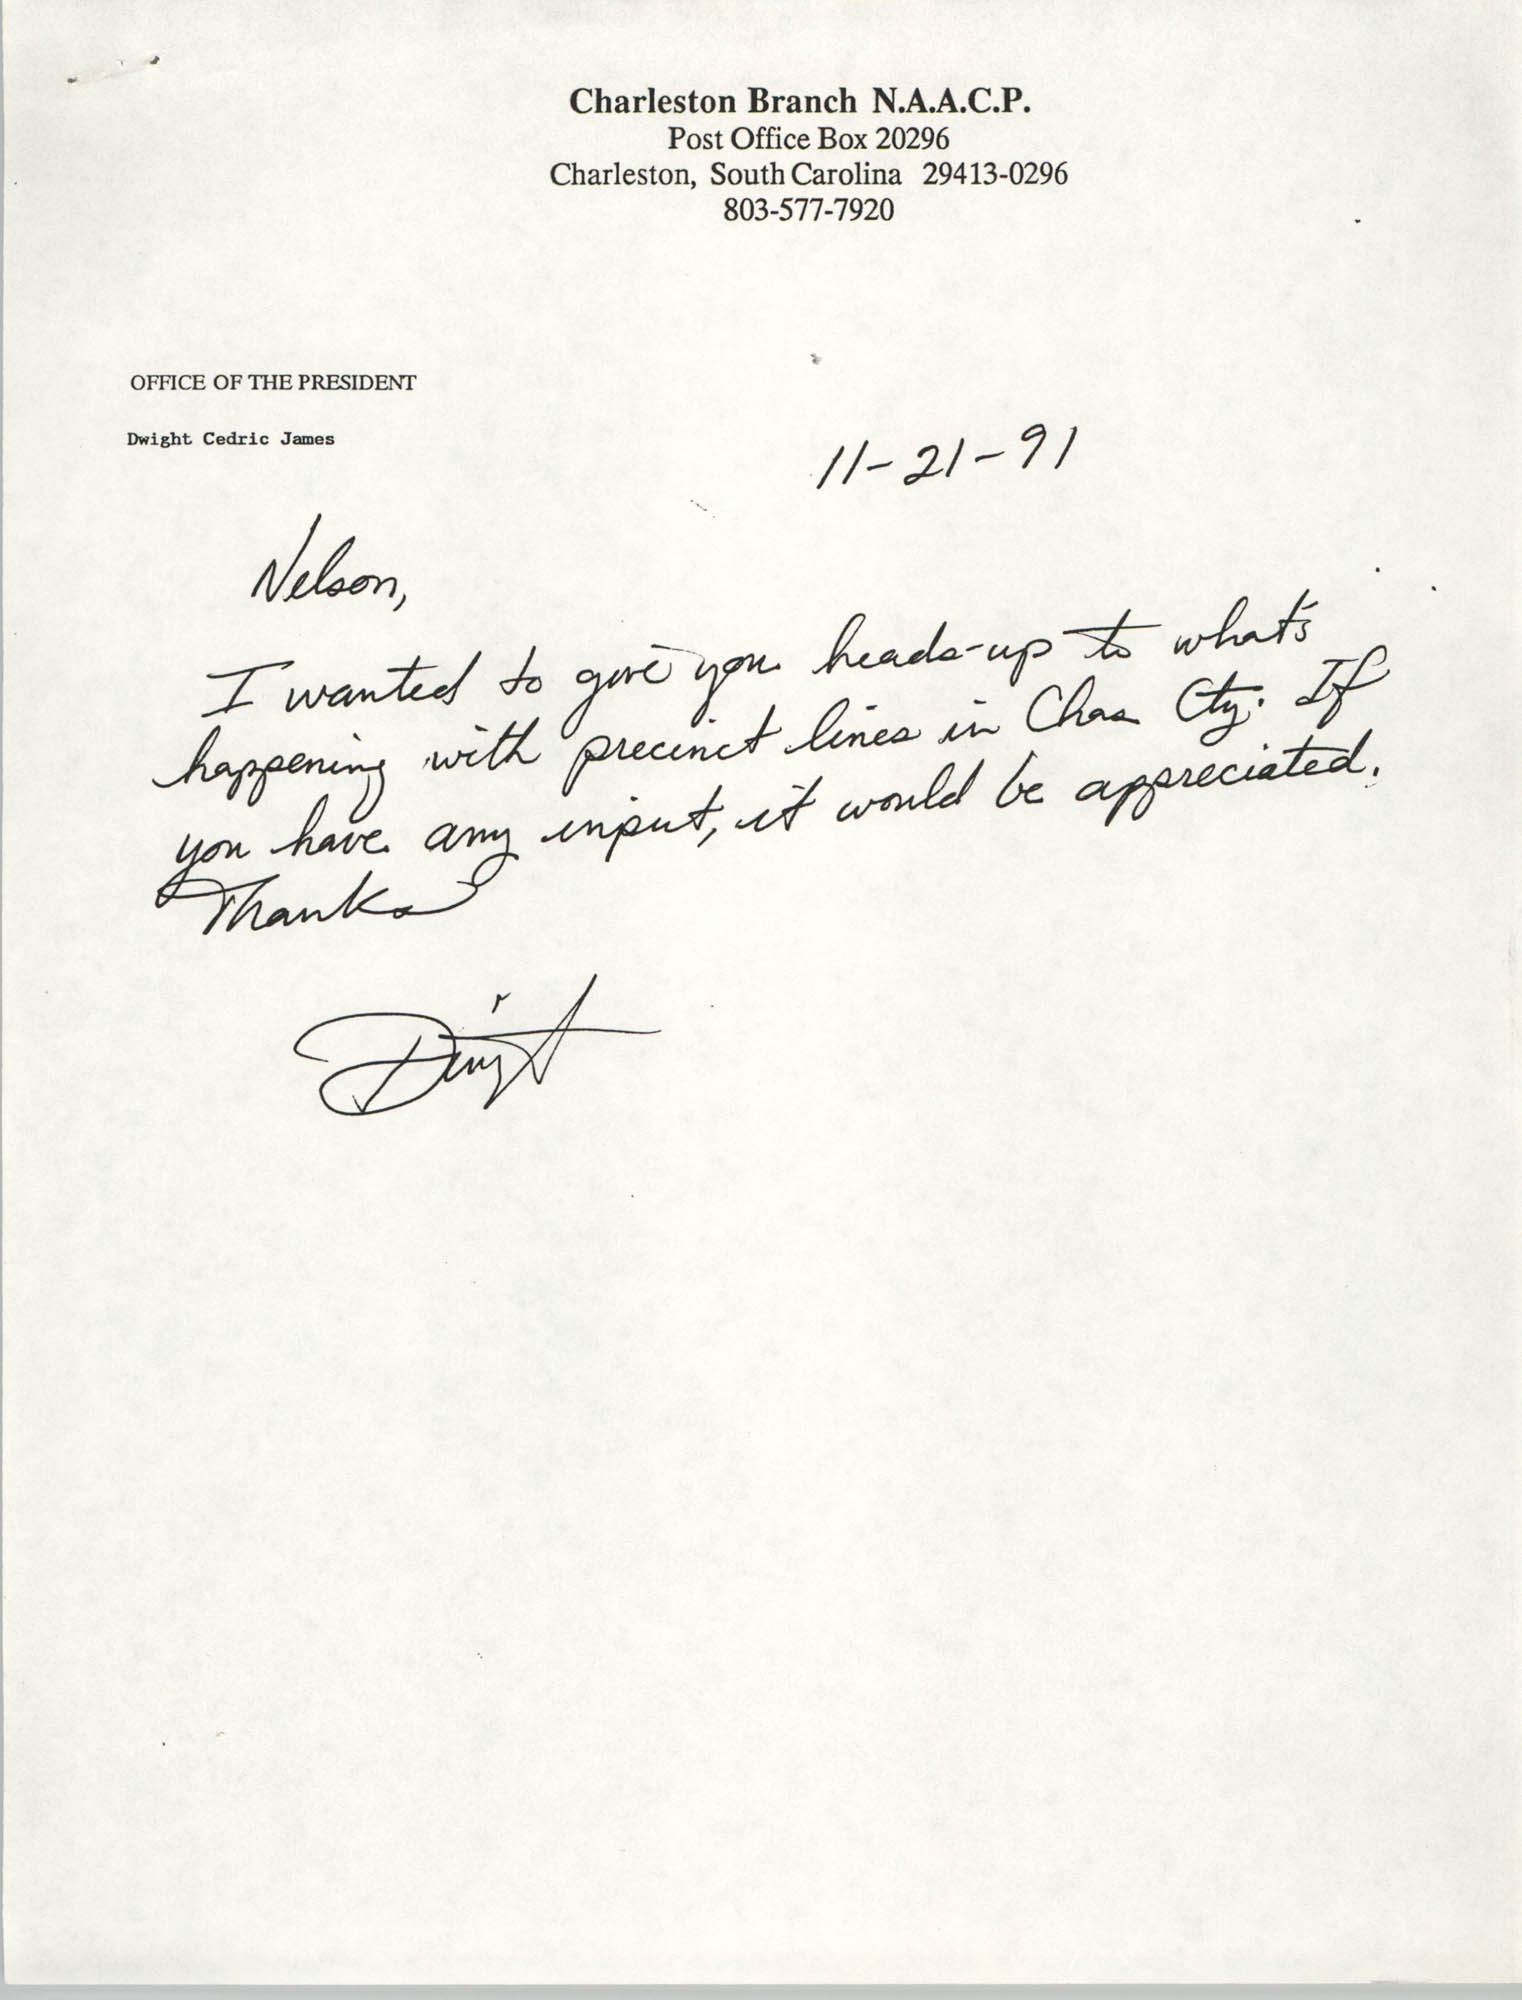 Letter from Dwight C. James to Nelson, November 21, 1991